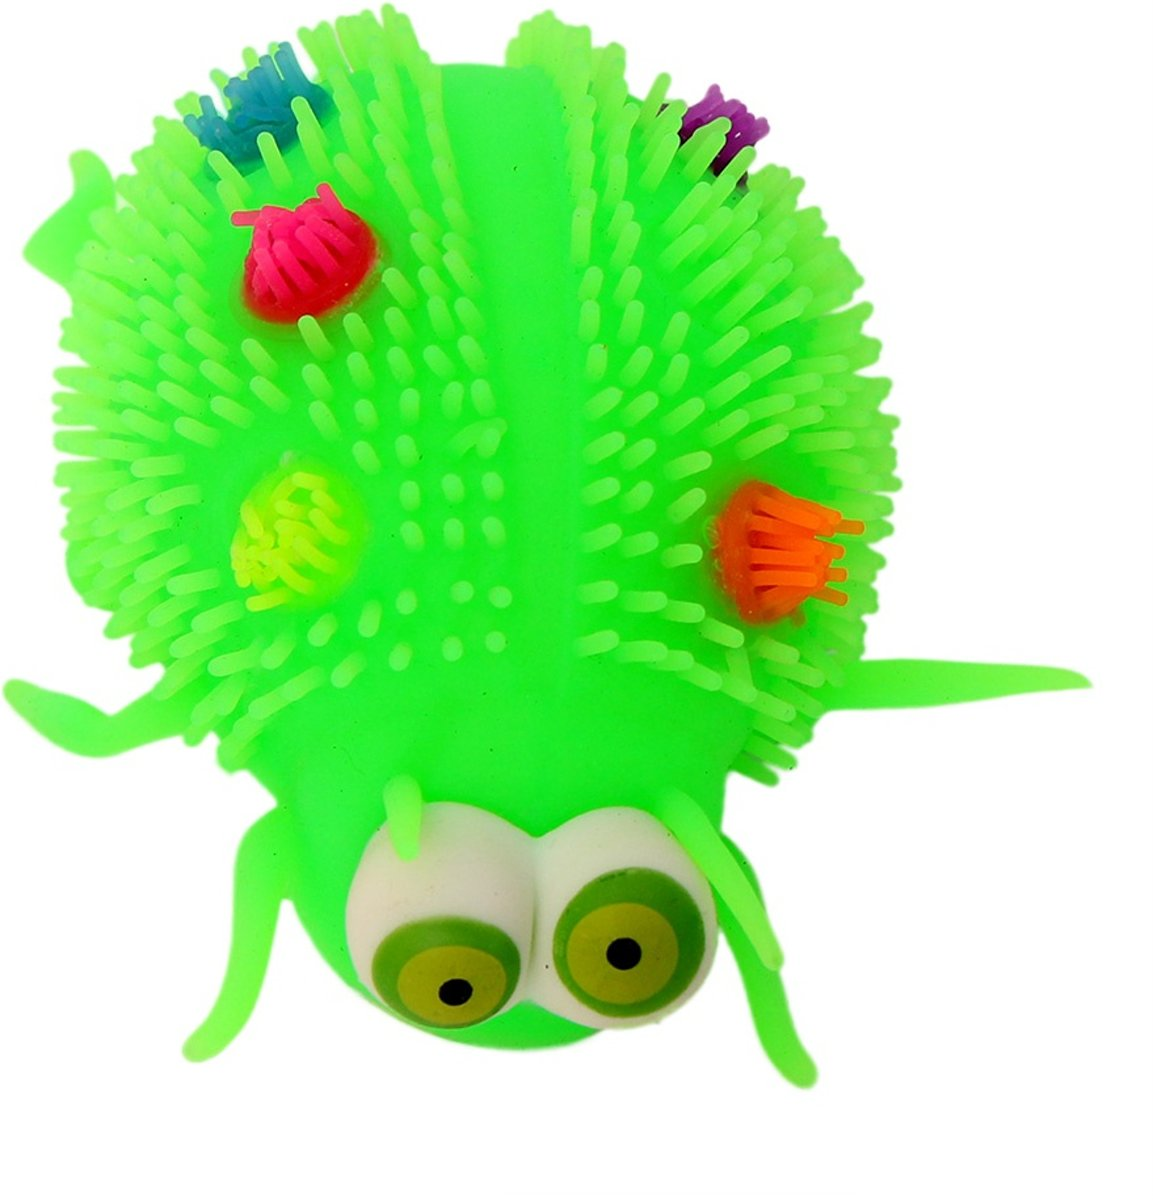 Gerardos Toys Fluffy Insect 12 Cm Groen